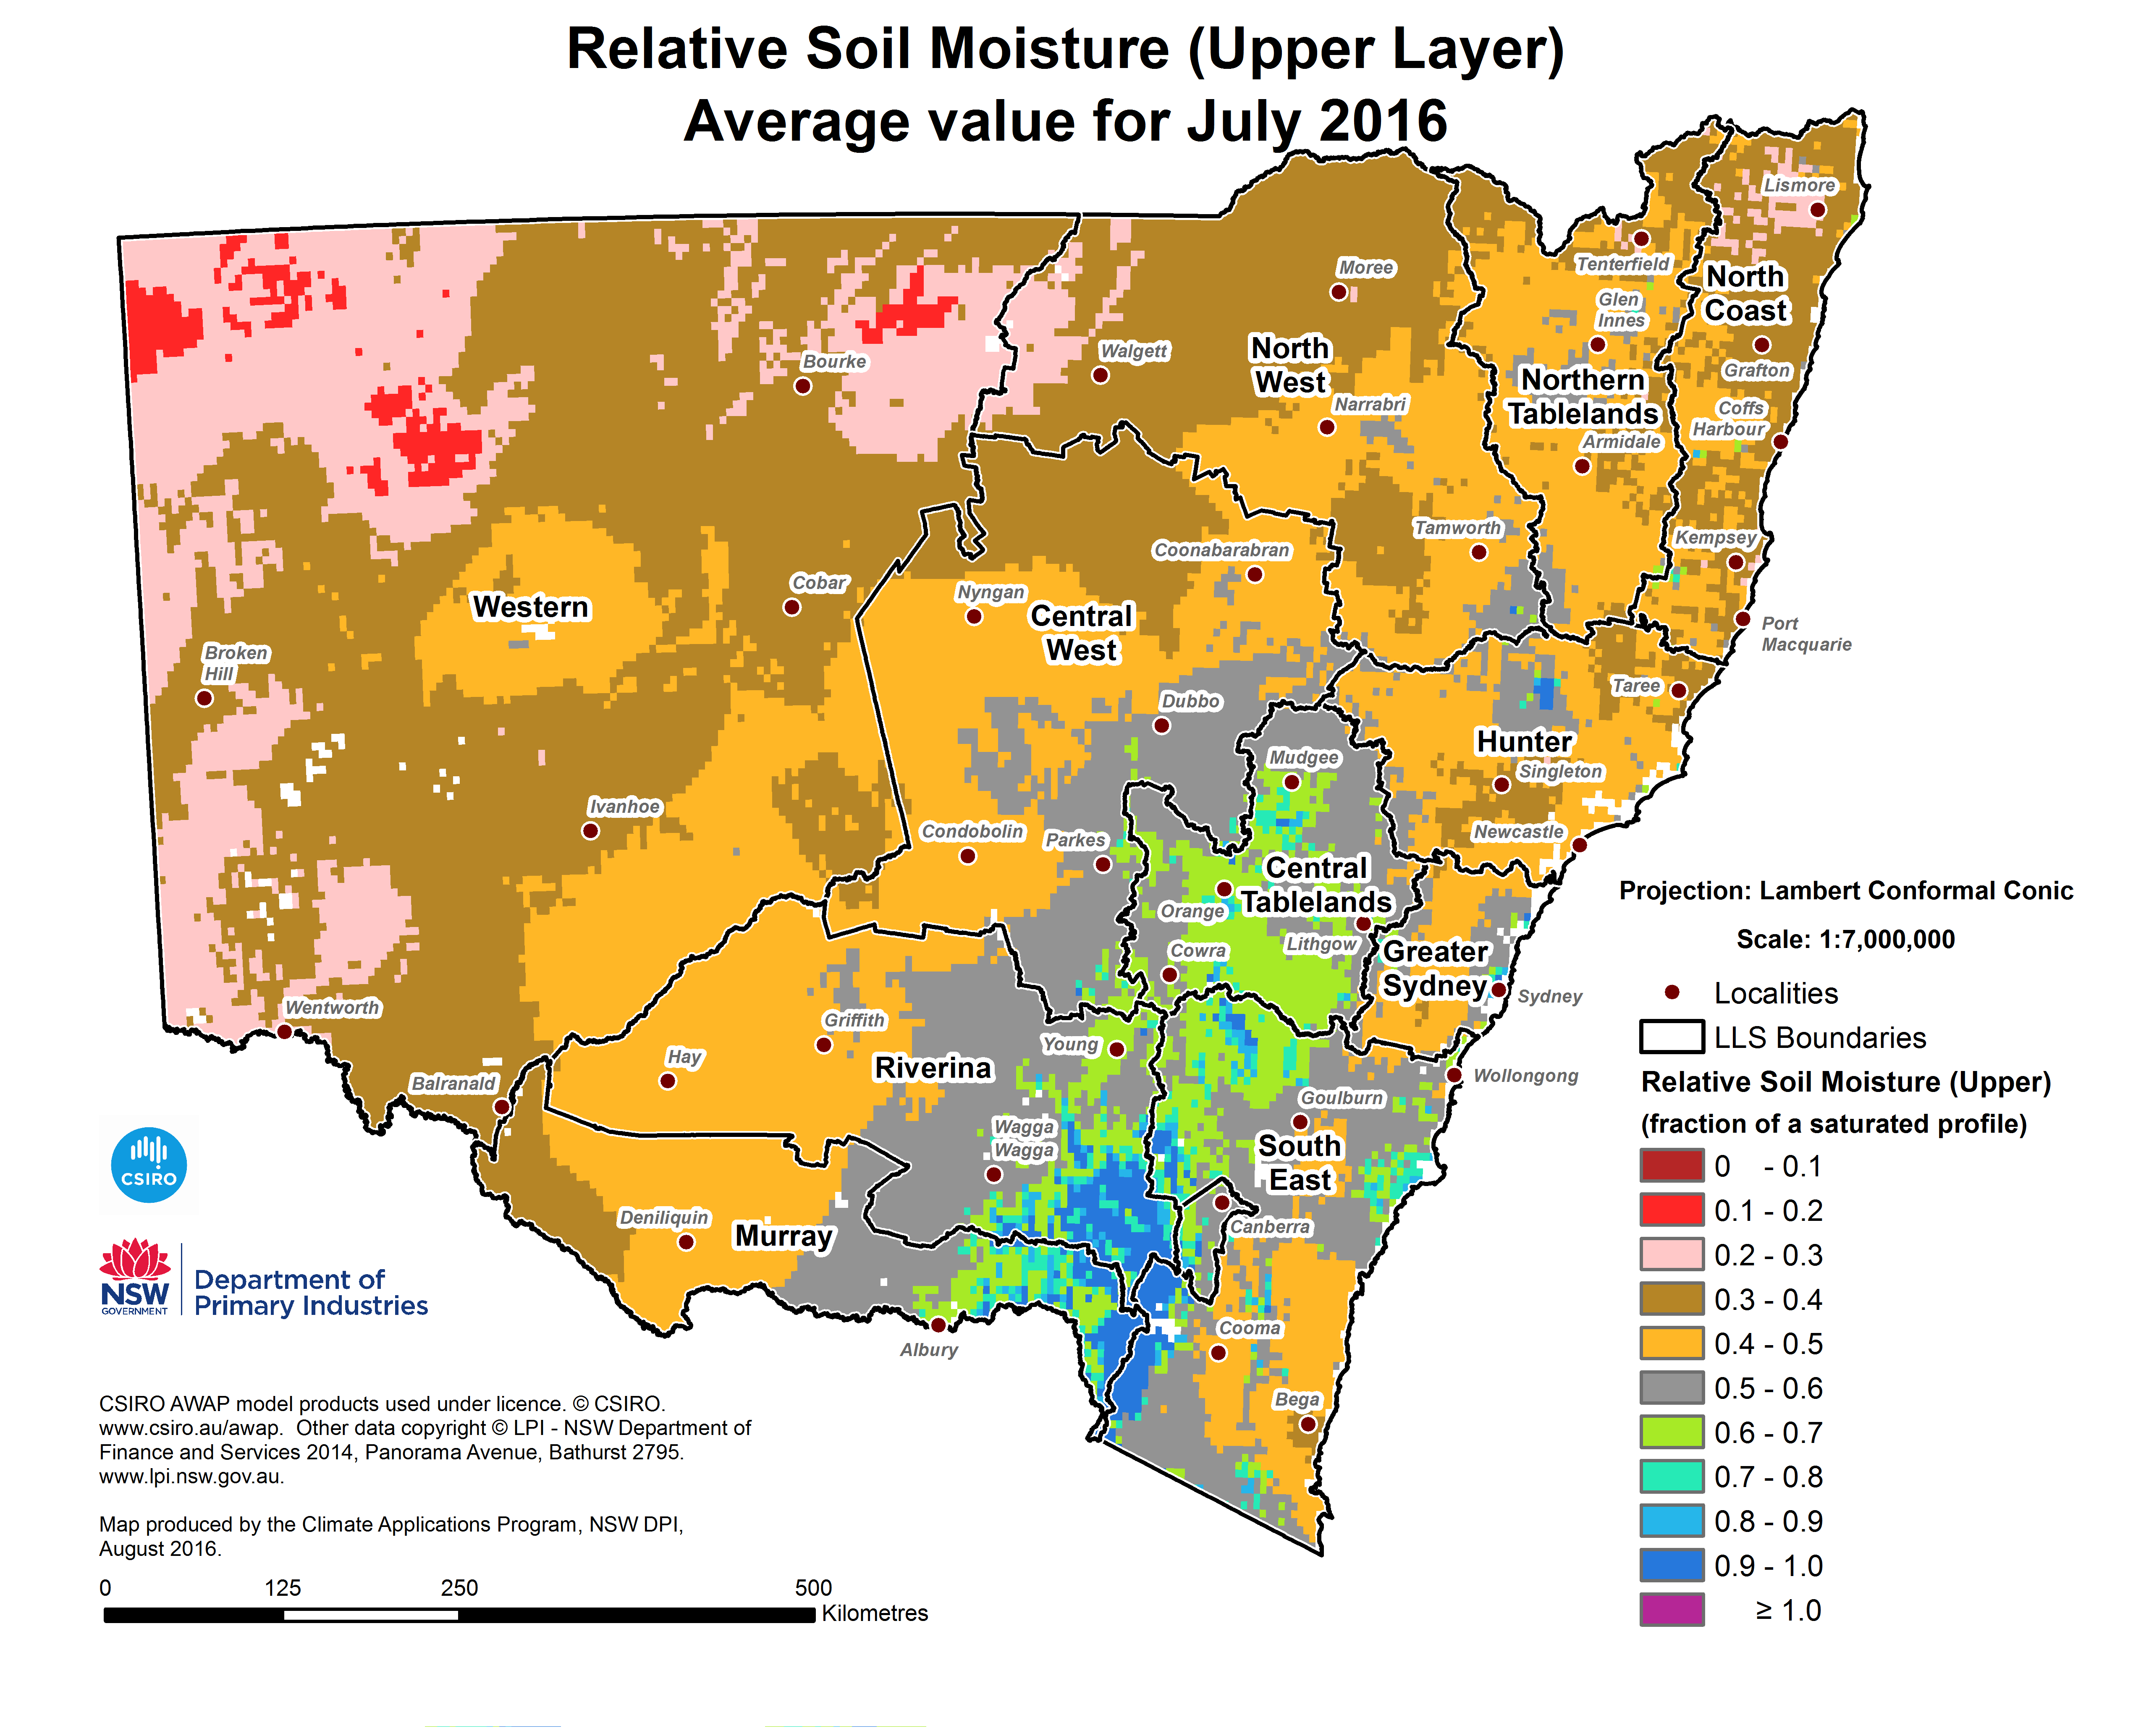 Stately Knowledge Facts About The United States US Route In - Us soil moisture map